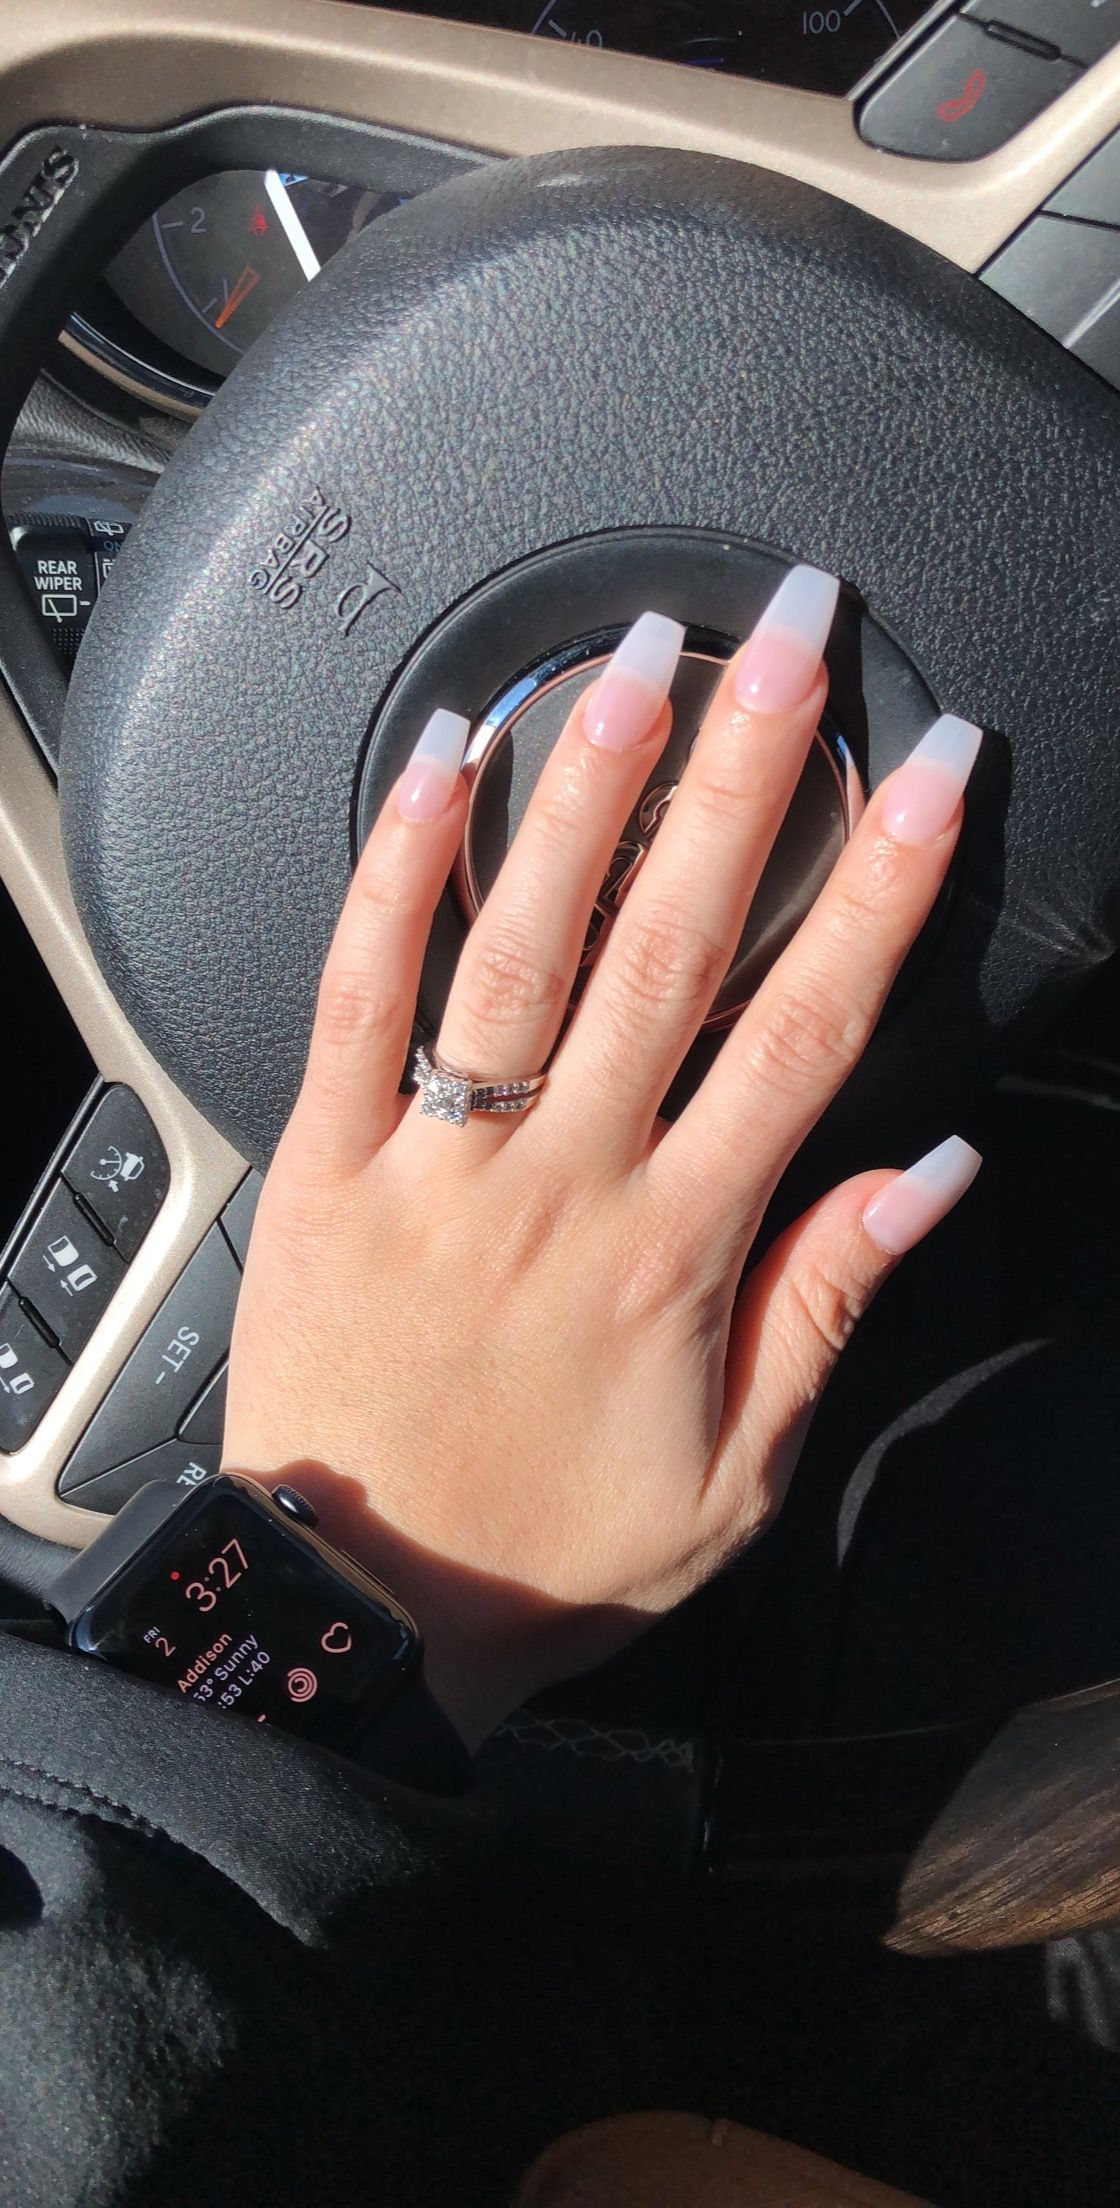 Sheer Gel Nails Coffin Shape Apple Watch Nail Inspo Natural Nails Natural Acrylic Nails Clear Acrylic Nails Natural Nails